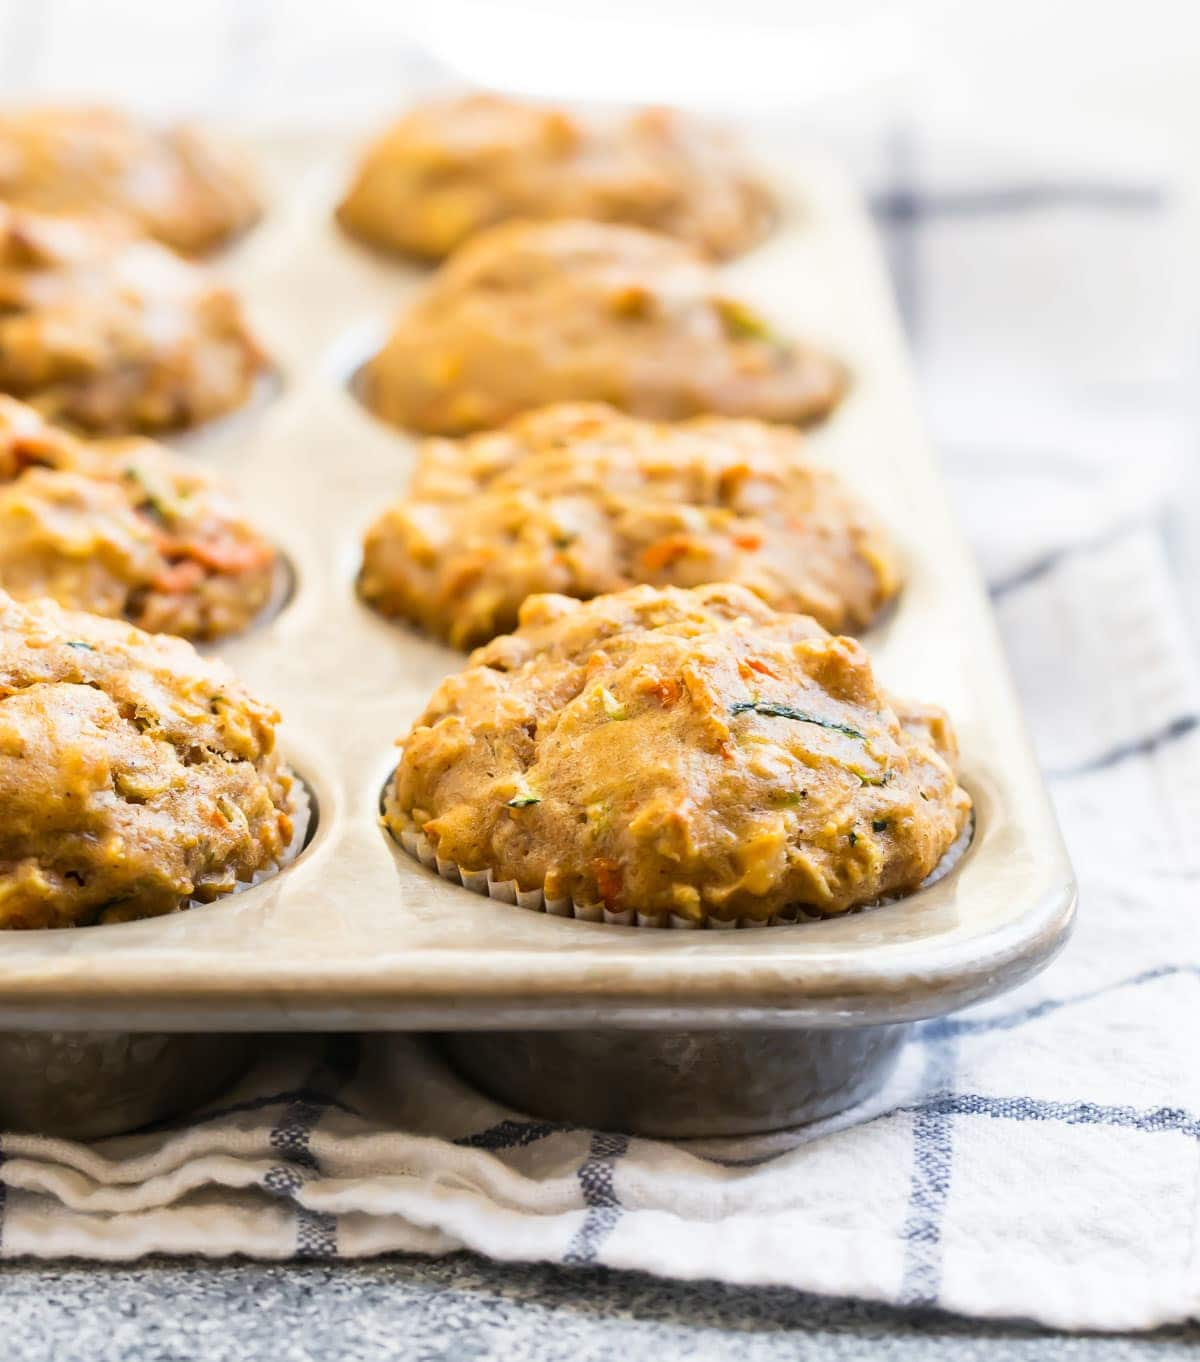 Zucchini carrot muffins in a muffin pan